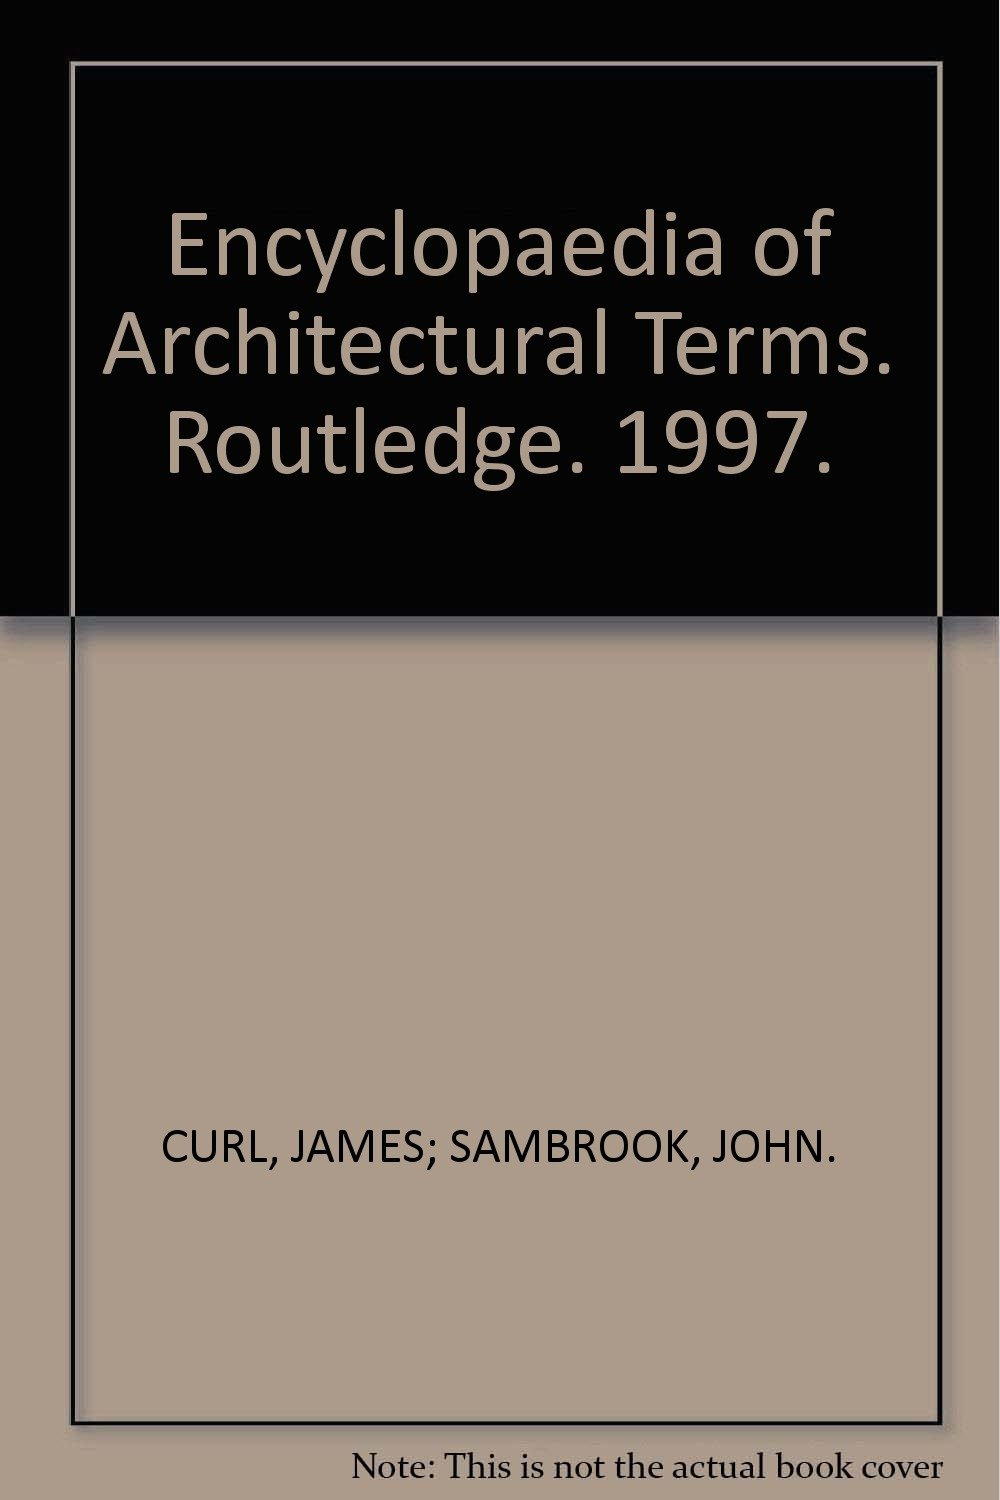 Encyclopaedia of Architectural Terms. Routledge. 1997.